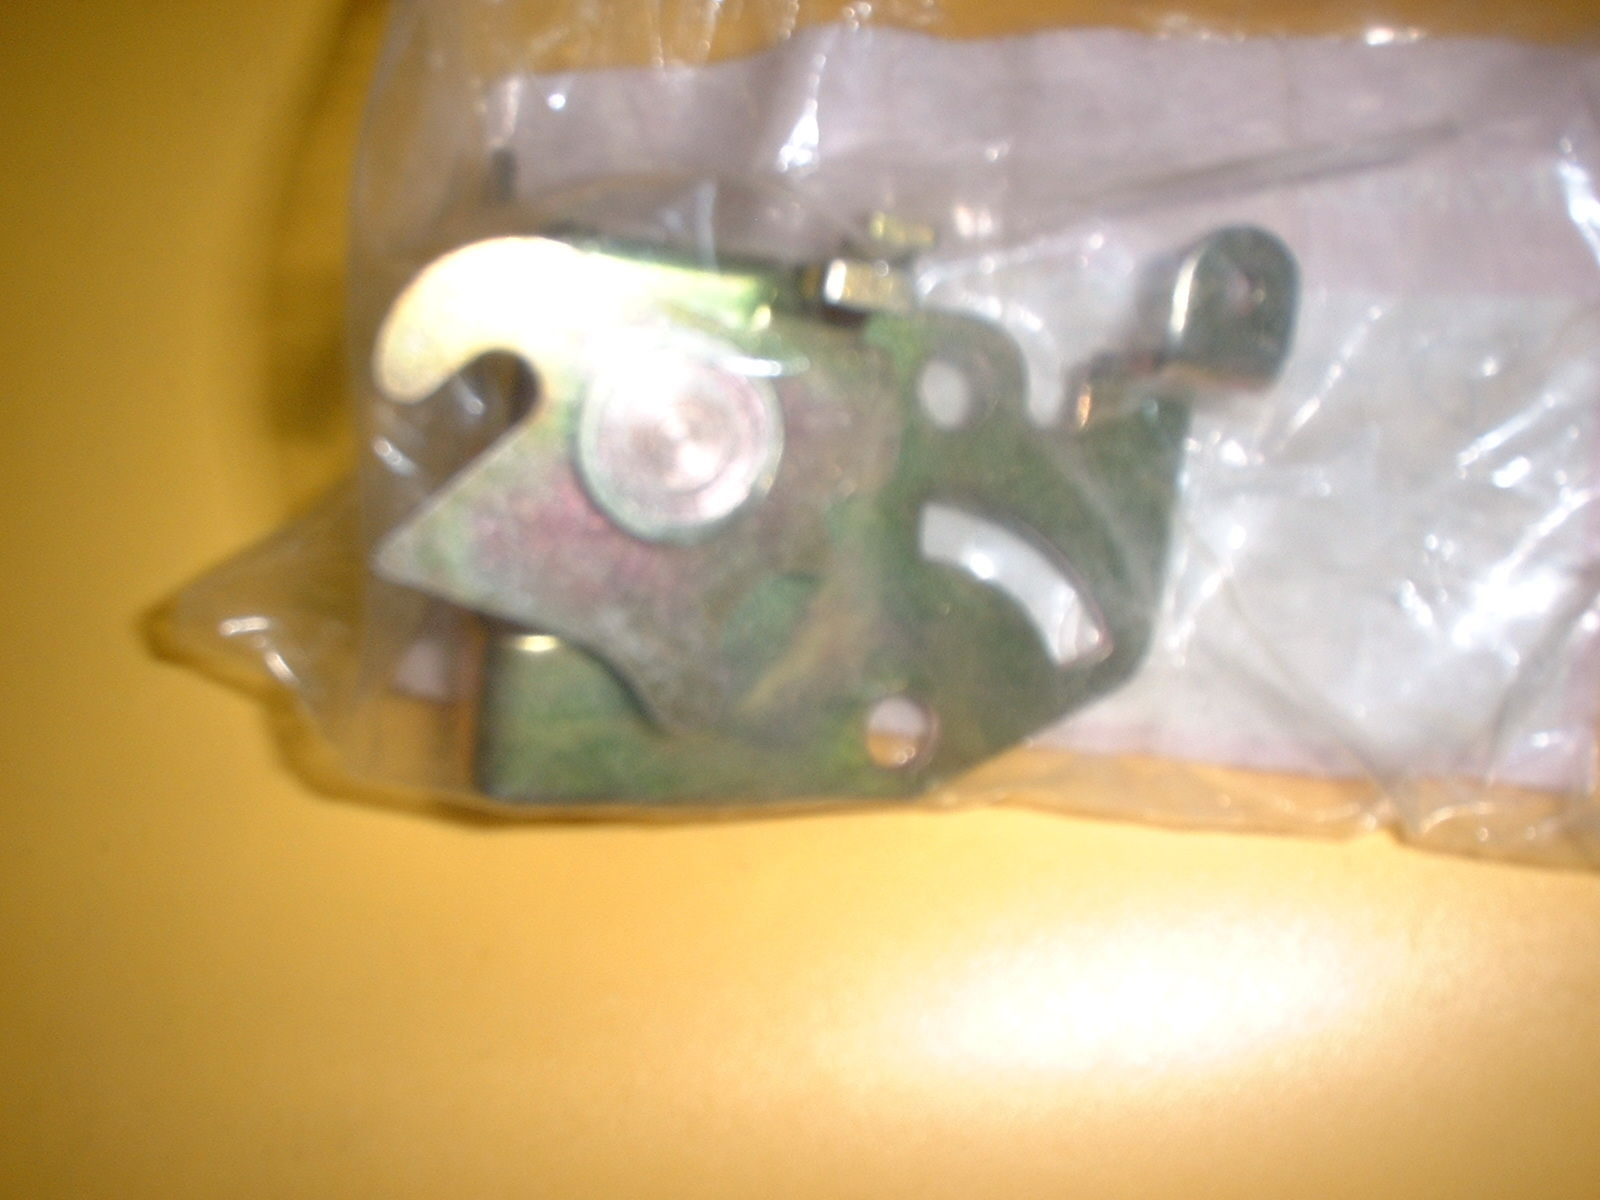 Honda Seat Catch Nt650v 1998 Deauville 77359-mbl-610